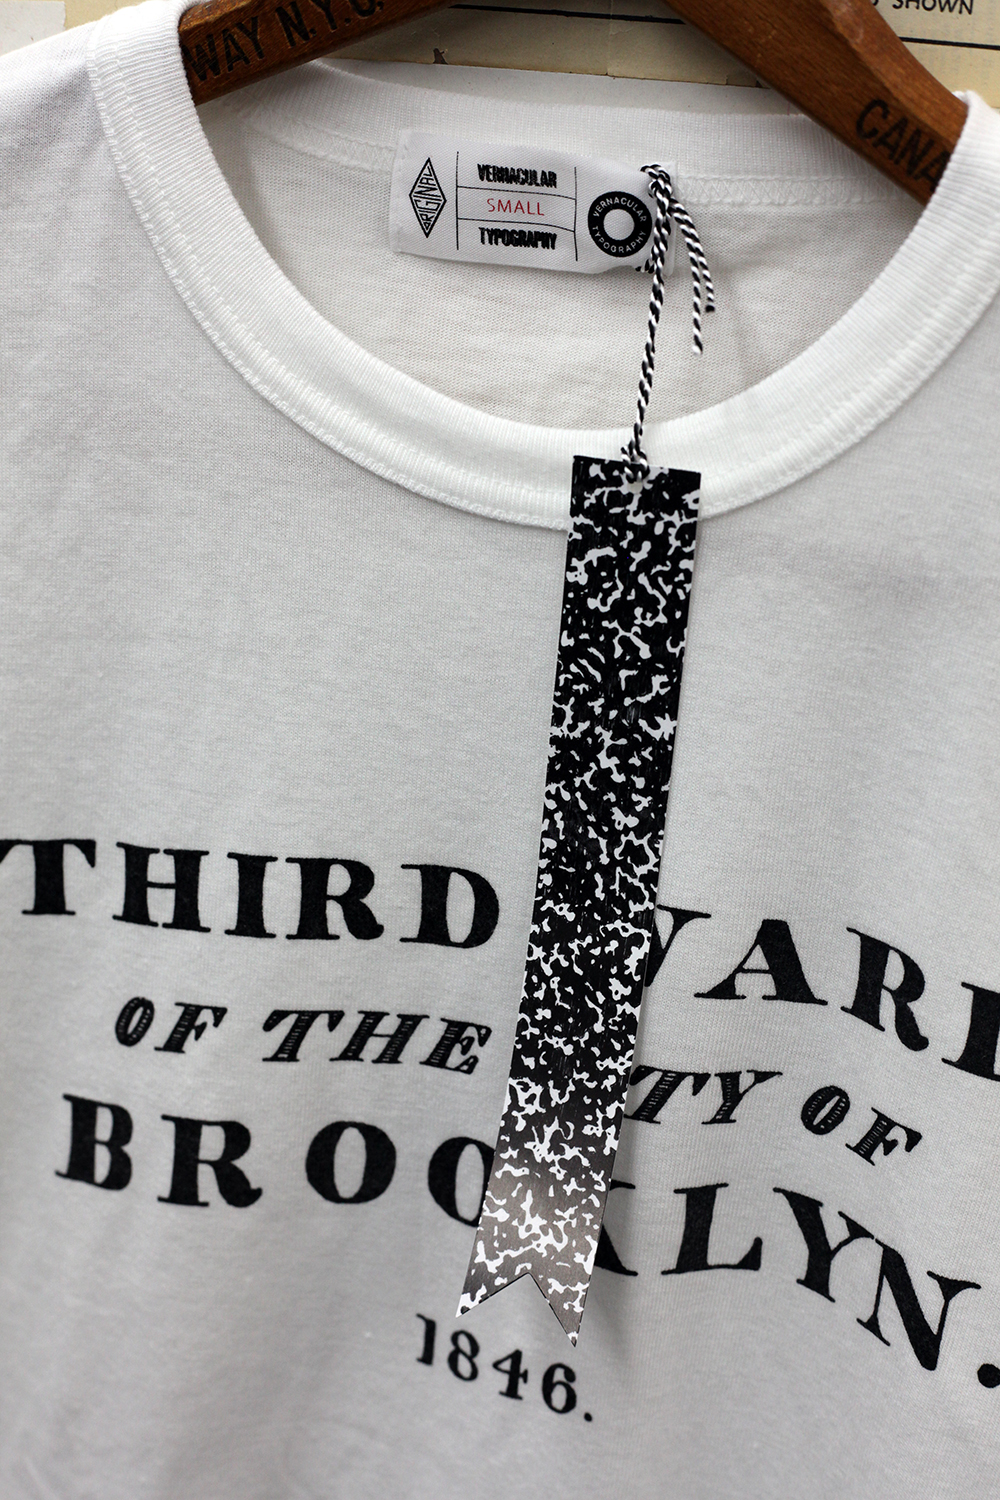 Vernacular Typography T-shirt detail Third Ward of the City of Brooklyn 1846